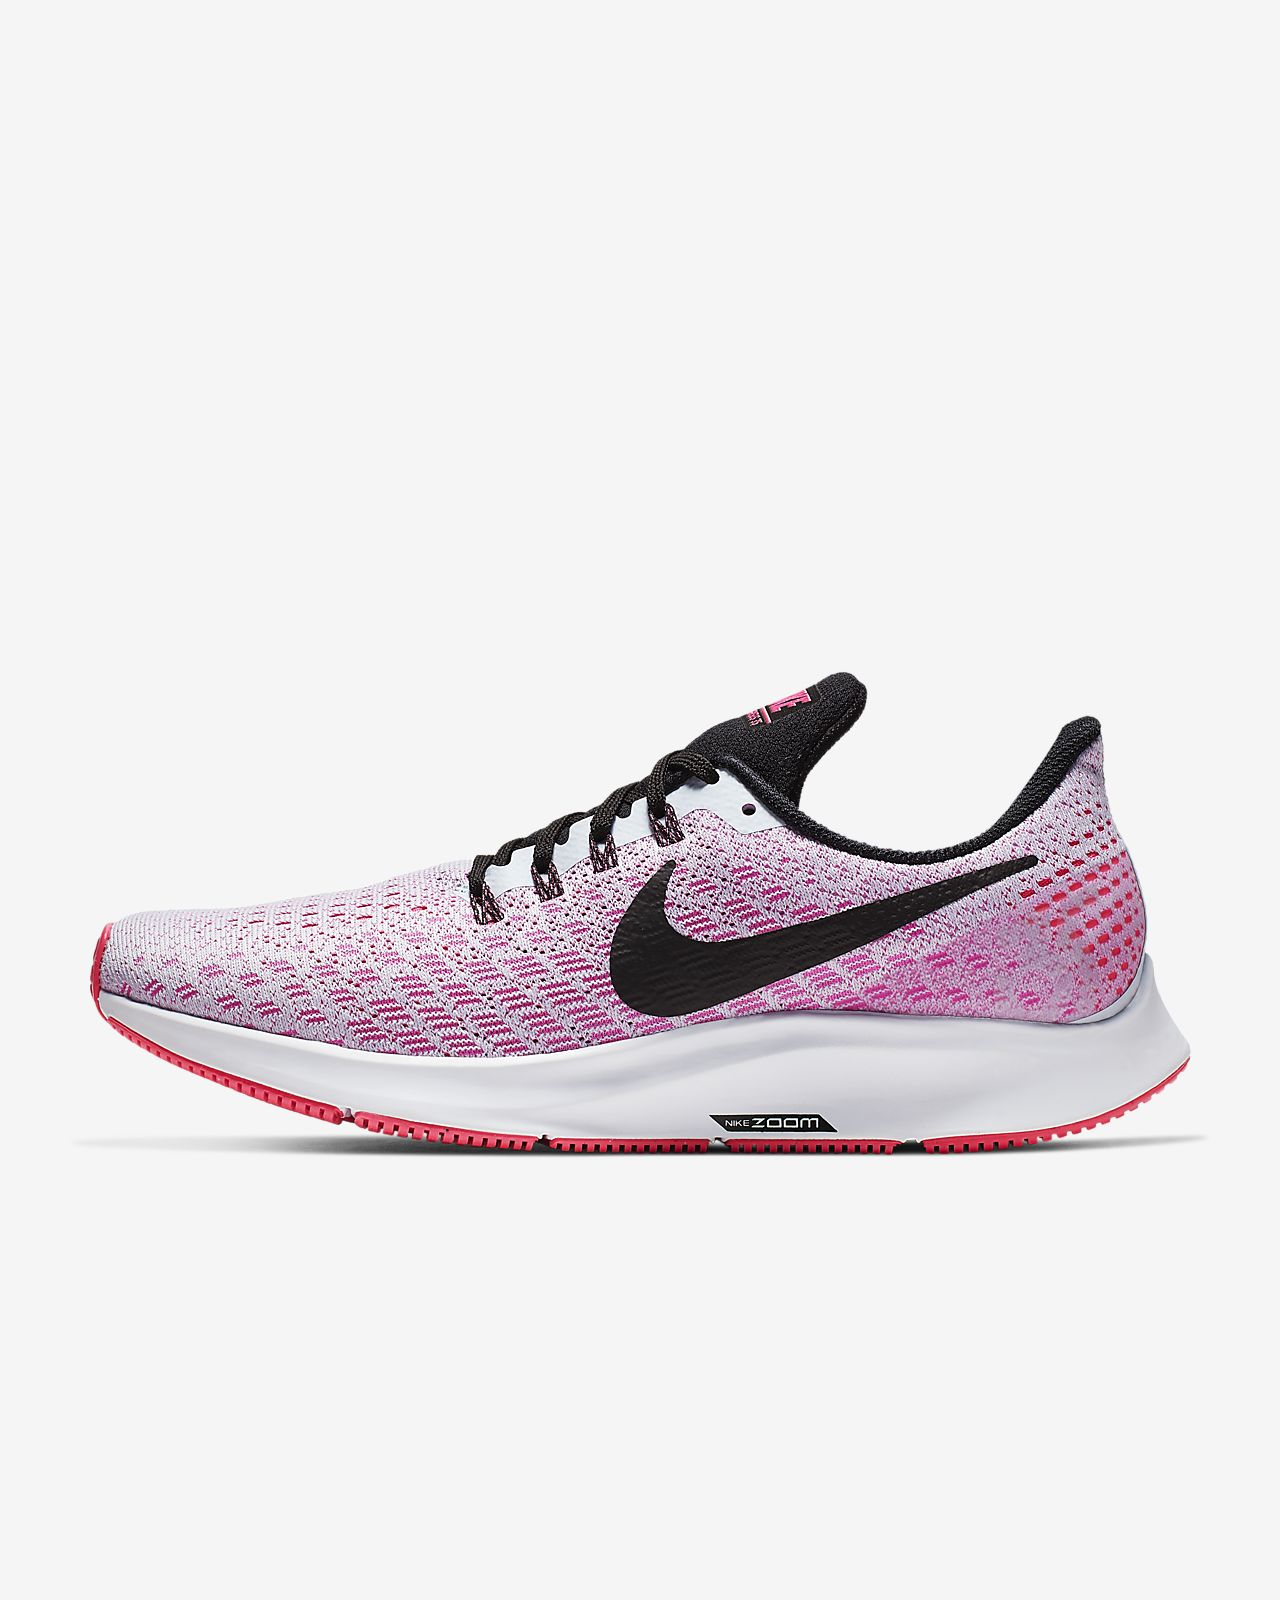 a6bbbcf8d Nike Air Zoom Pegasus 35 Women s Running Shoe. Nike.com